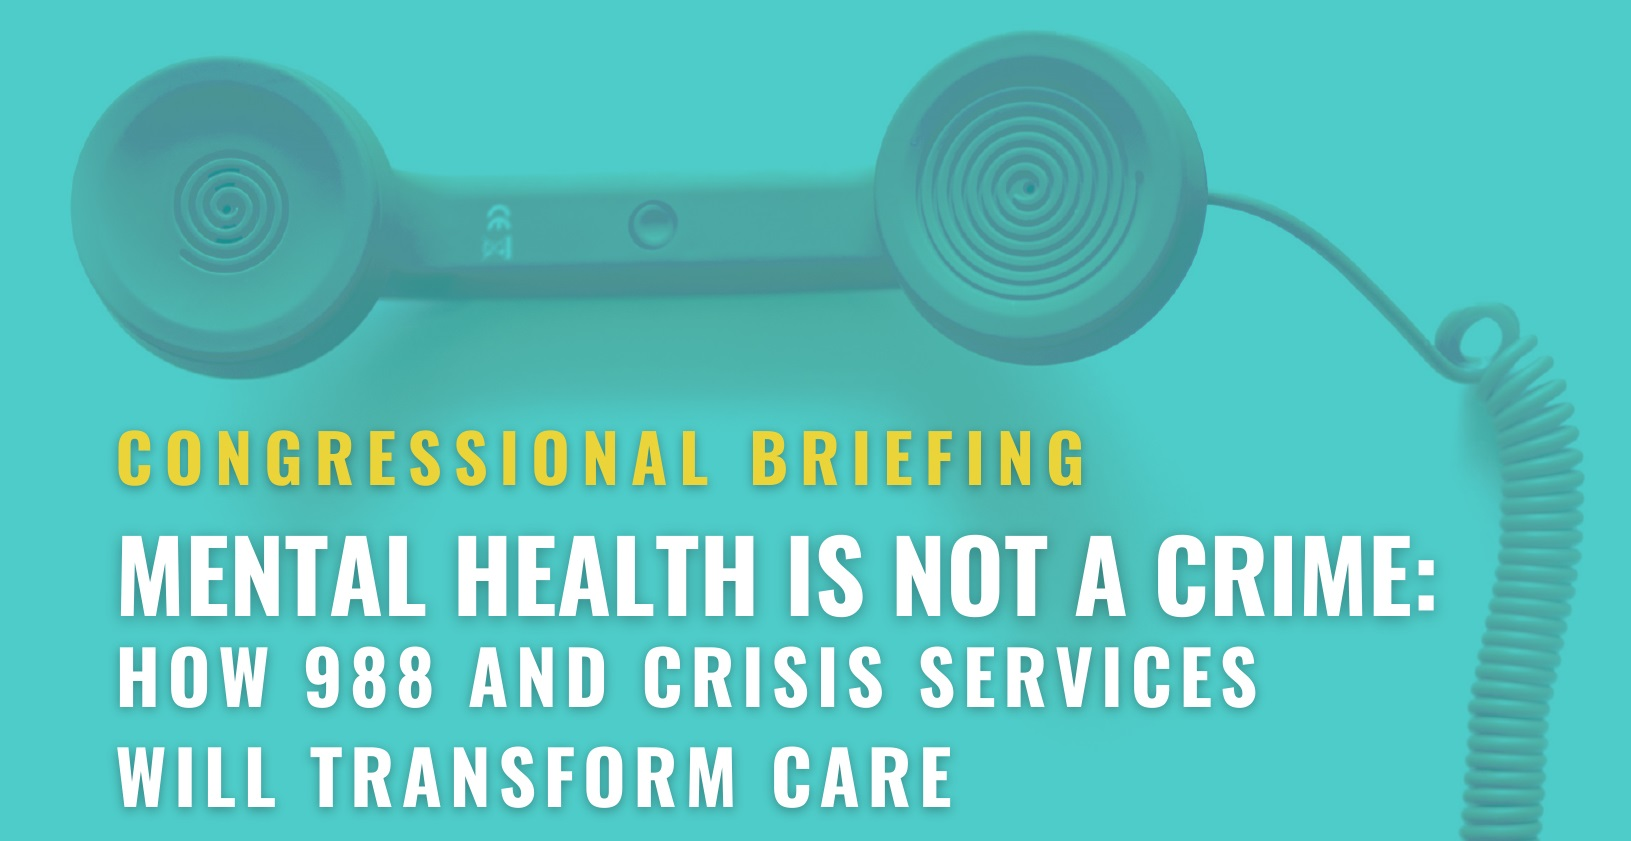 National Response Congressional Briefing Series - Mental Health is Not a Crime: How 988 and Crisis Services Will Transform Care